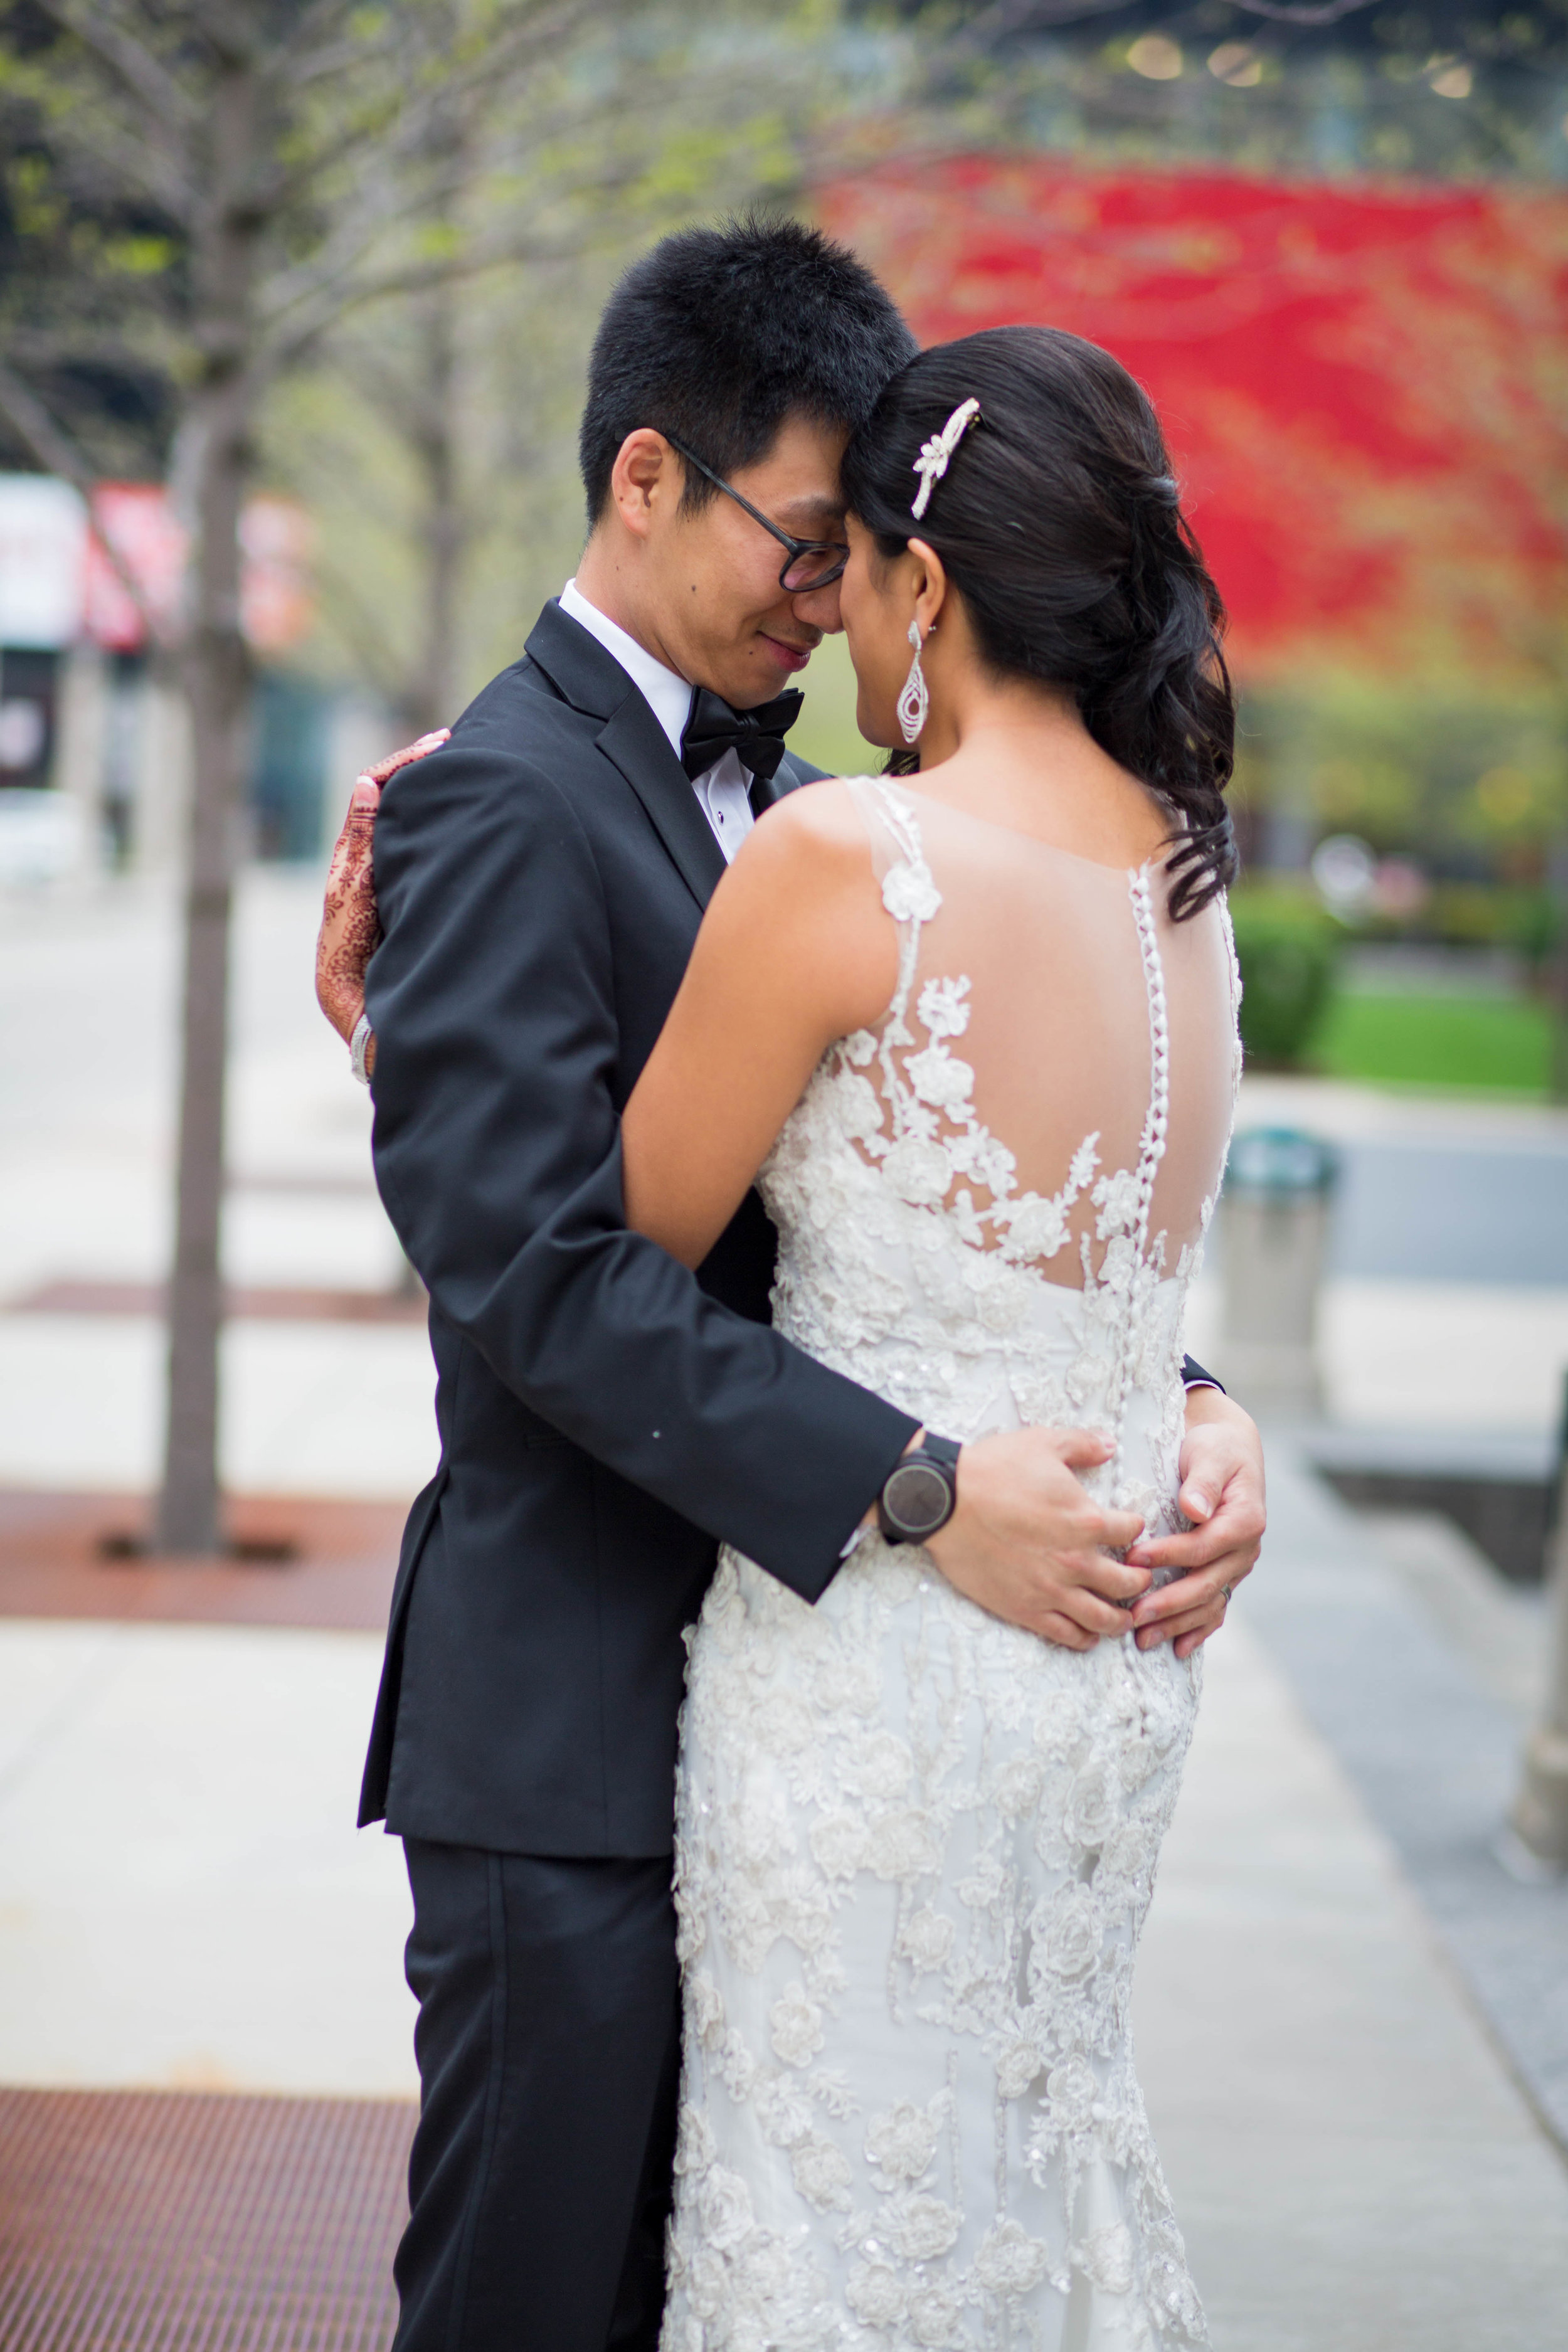 LeCapeWeddings - Chicago South Asian Wedding -108.jpg